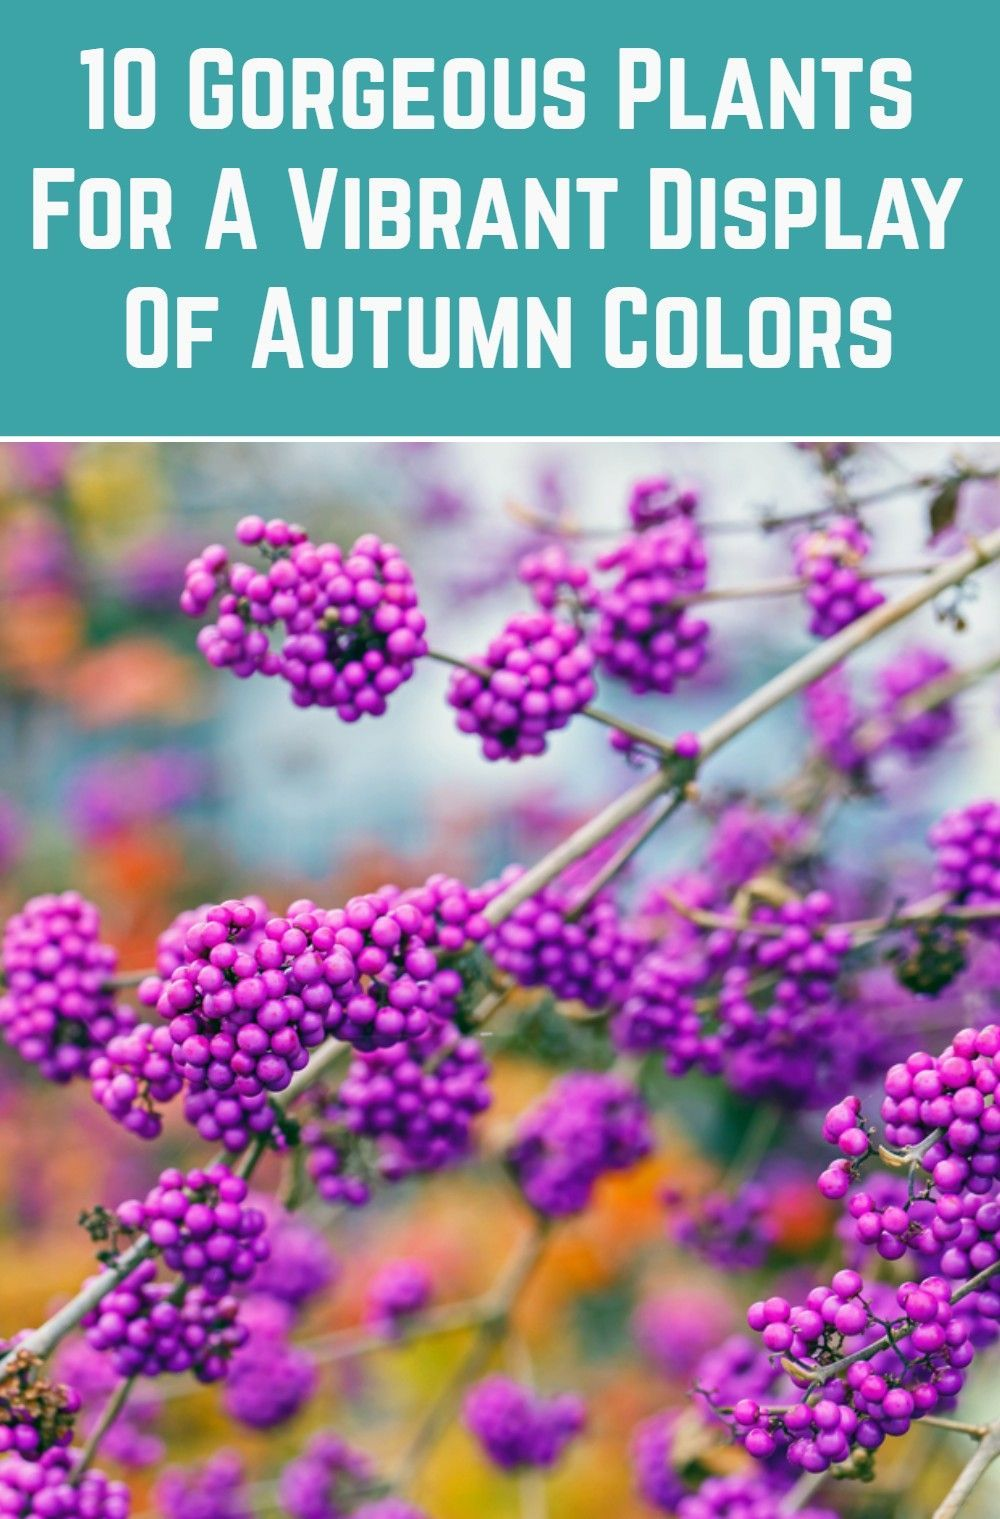 10 Gorgeous Plants For A Vibrant Display Of Autumn Colors In 2020 Plants Fall Plants Fall Colors